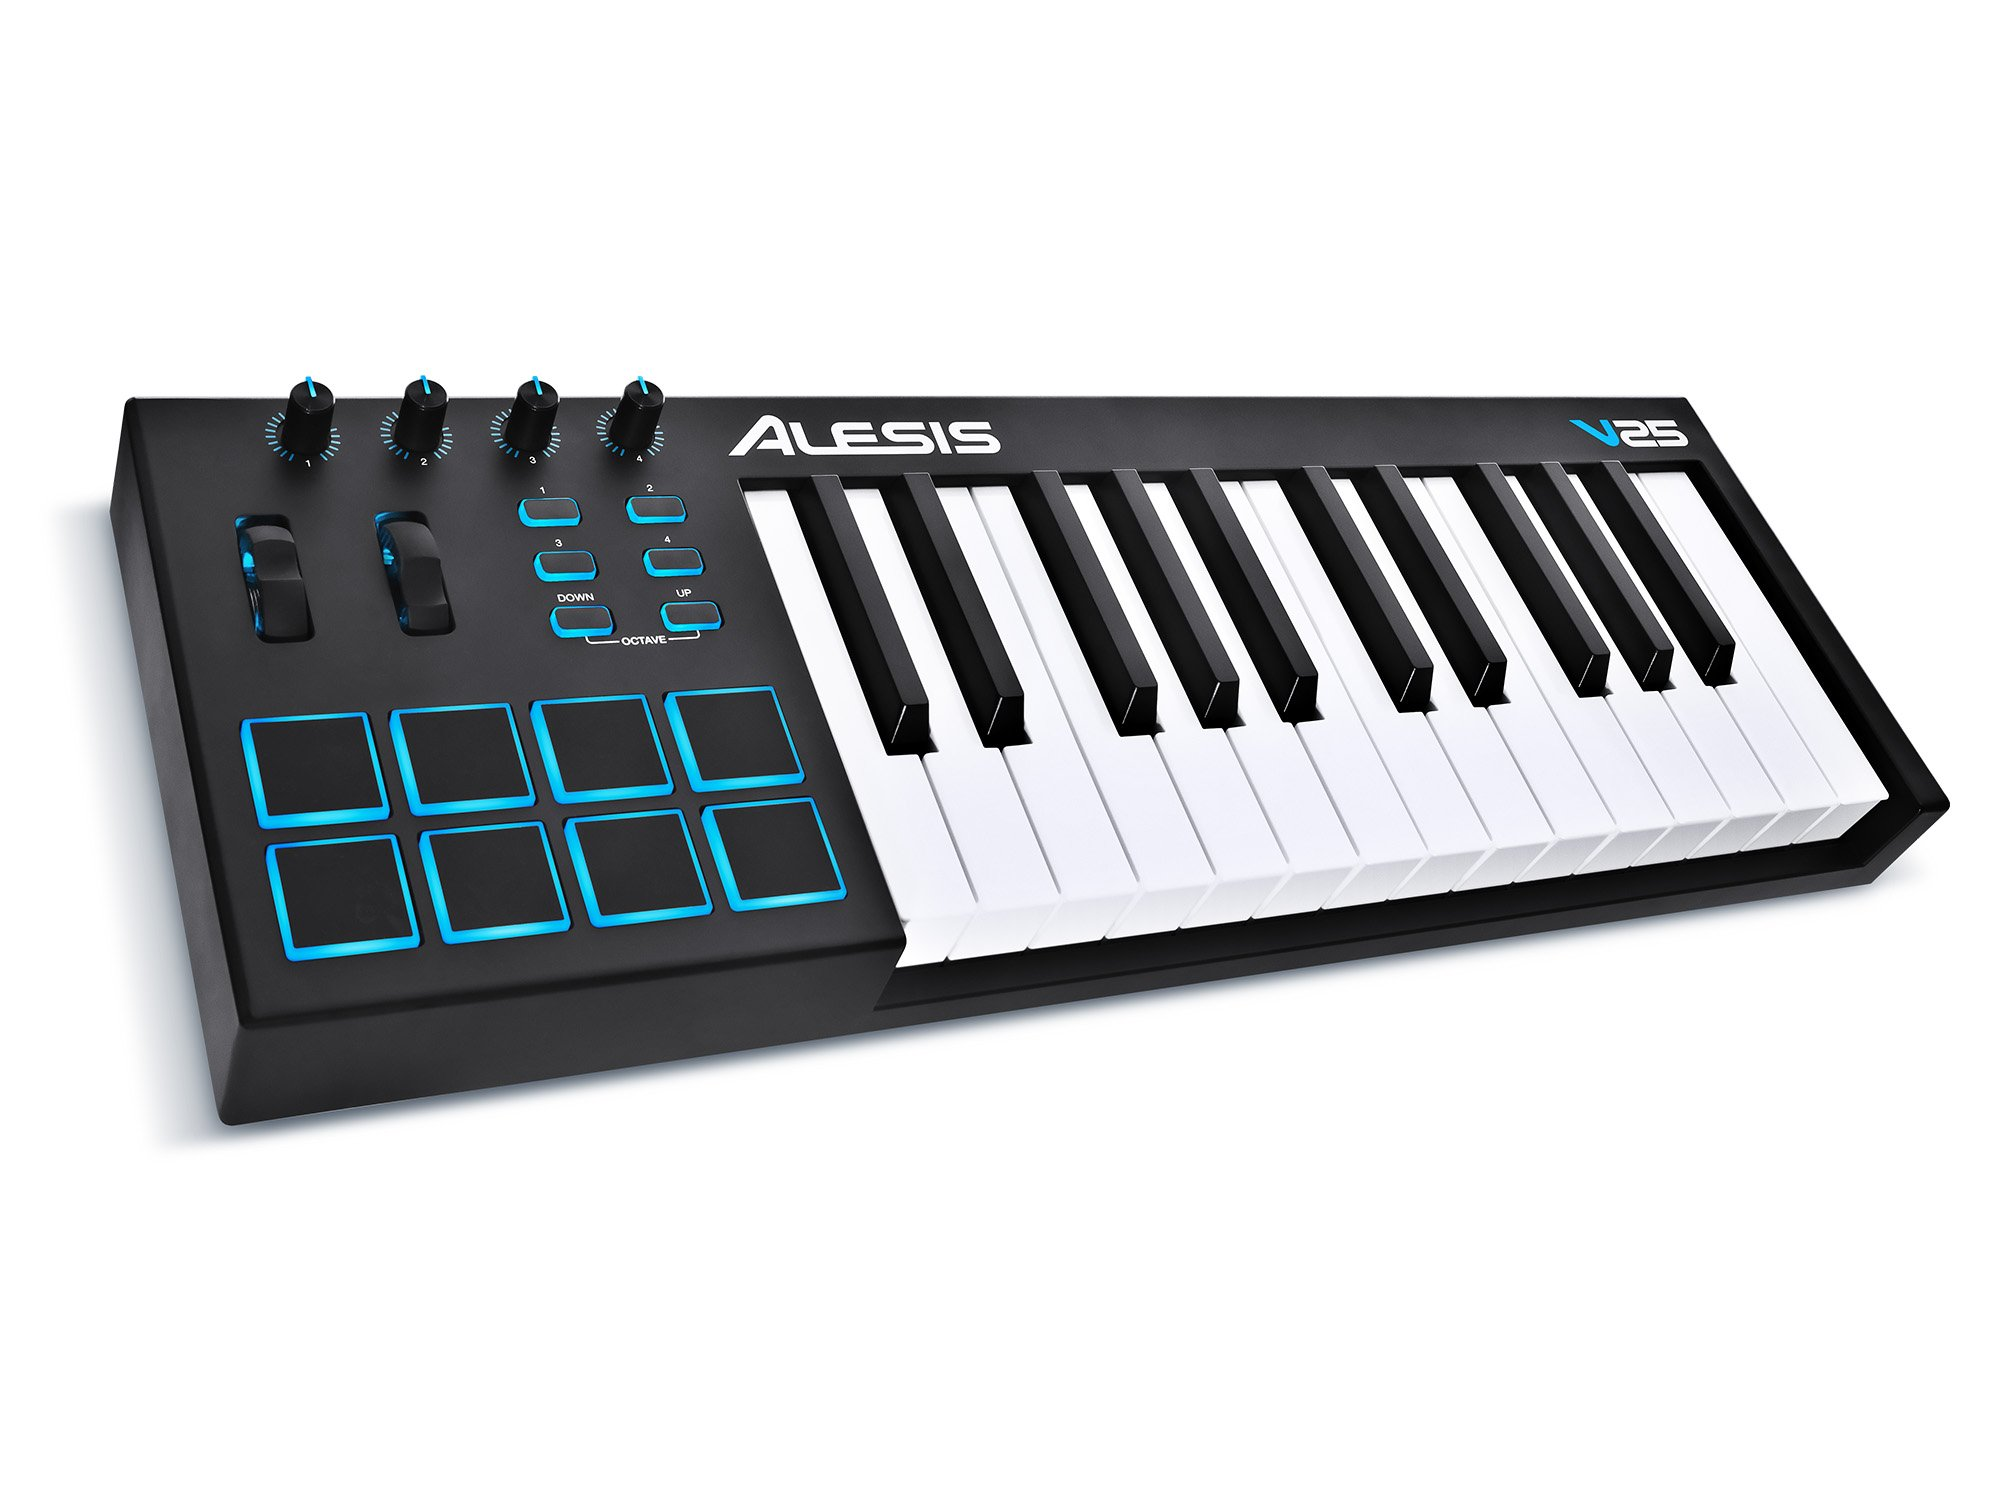 Alesis V25 | 25-Key USB MIDI Keyboard Controller with Backlit Pads, 4 Assignable Knobs and Buttons, Plus a Professional Software Suite with ProTools | First Included by Alesis (Image #1)